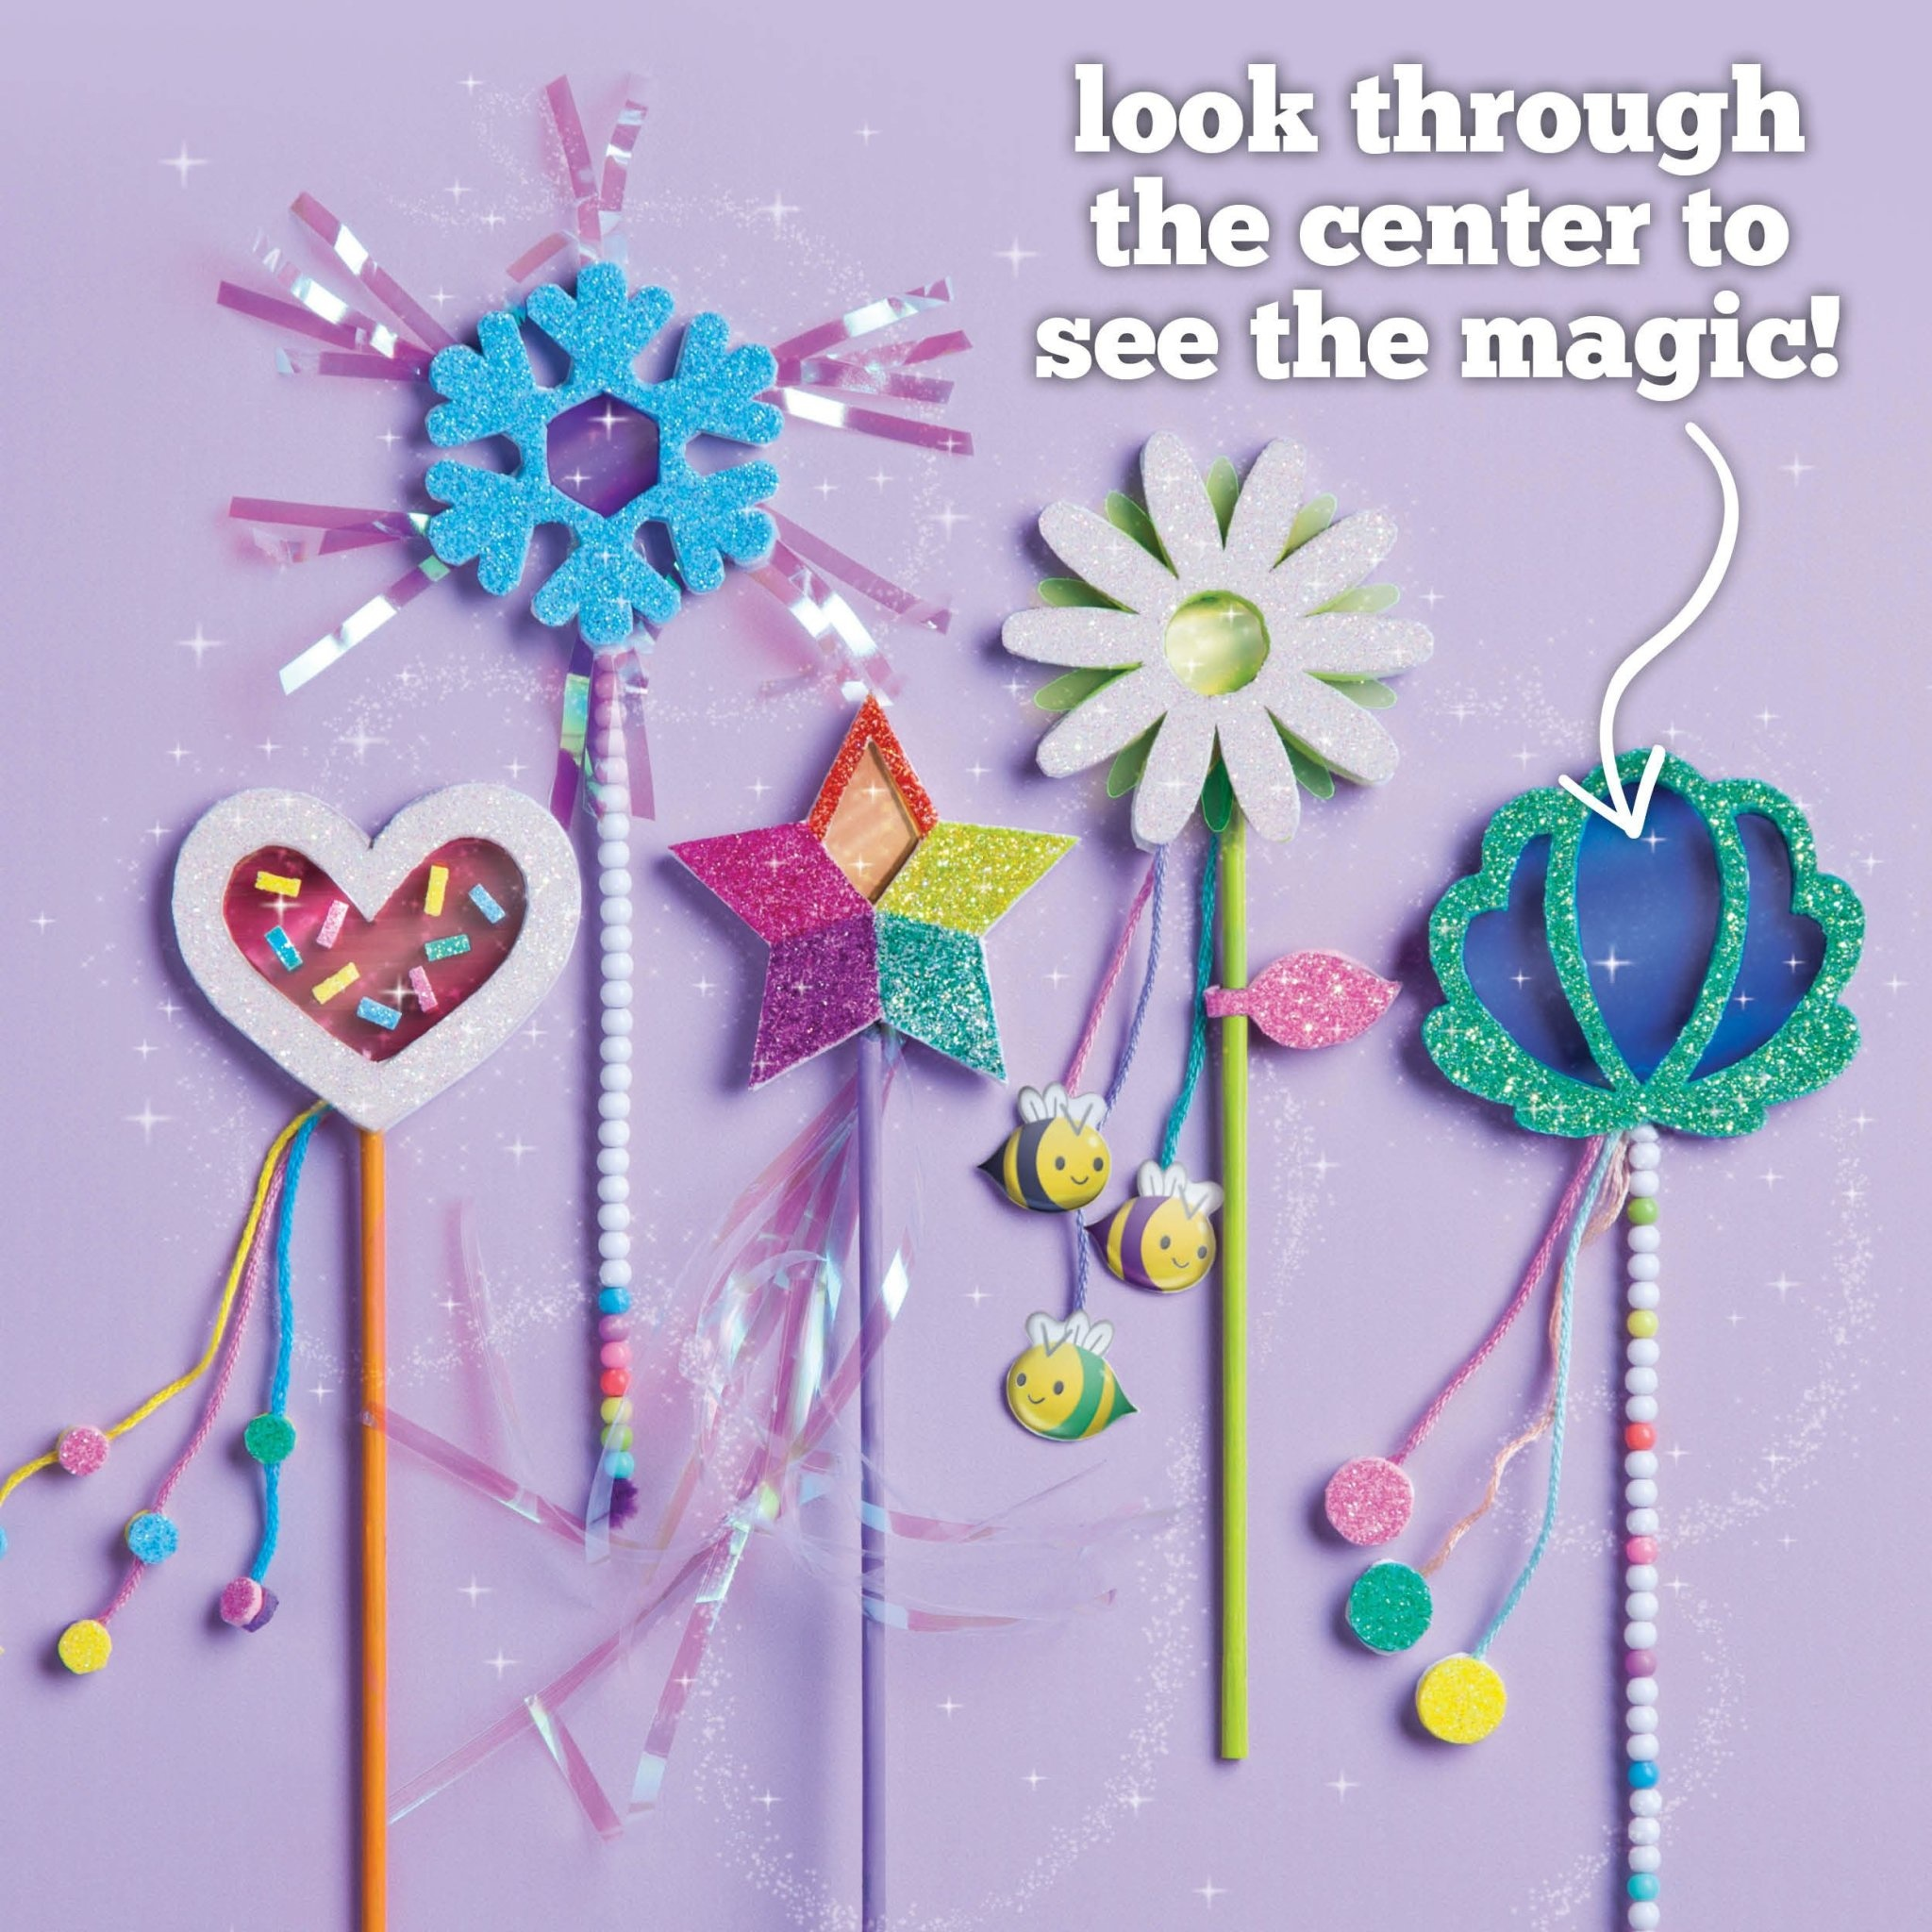 Craft-tastic Make Your Own Magical Wands-2